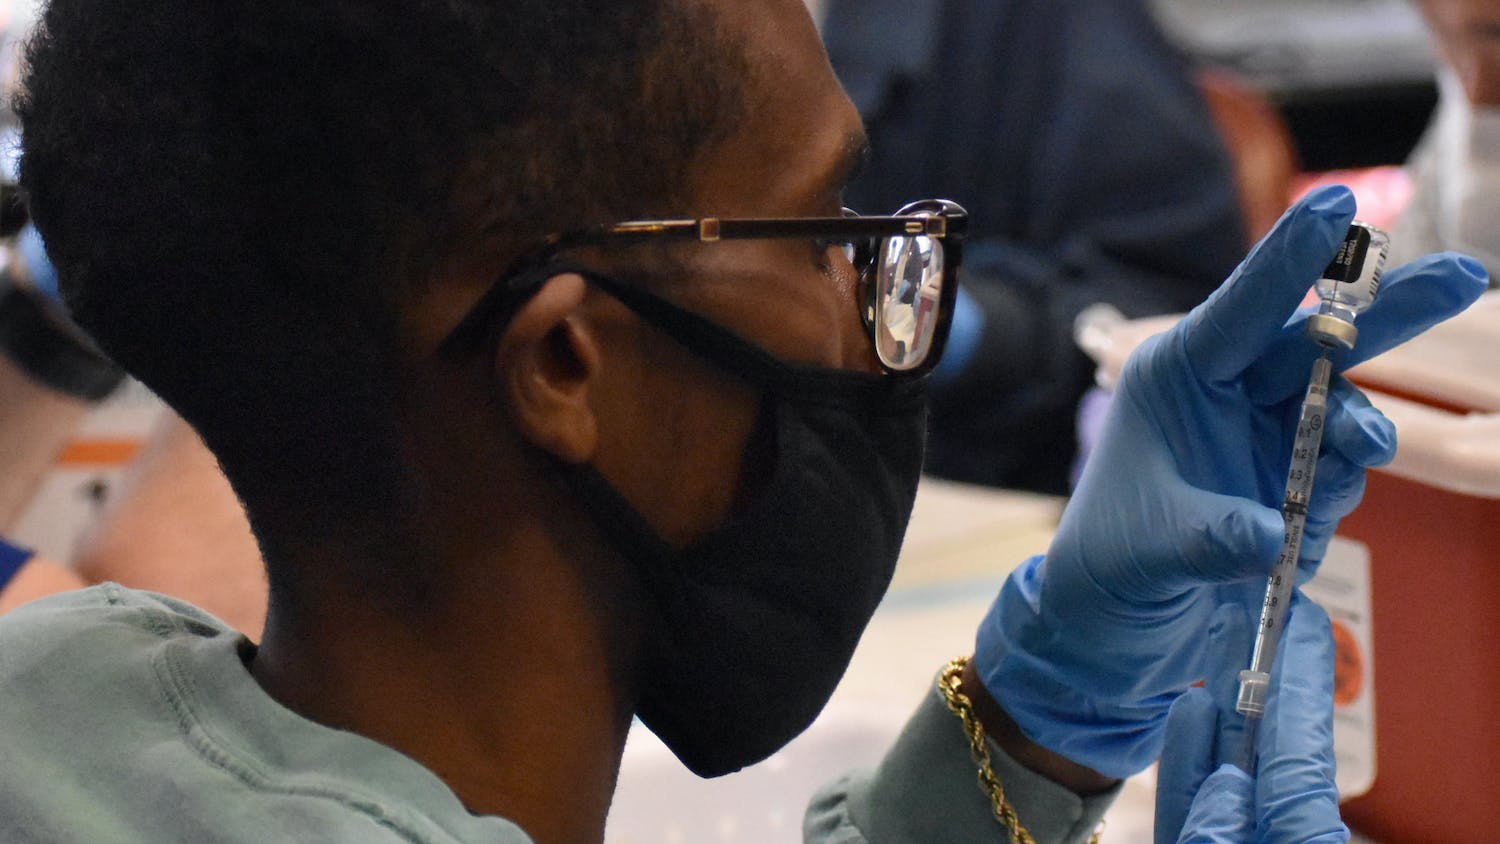 A UF pharmacy student prepares the COVID-19 vaccine before it is administered Friday, Feb.5, 2021.